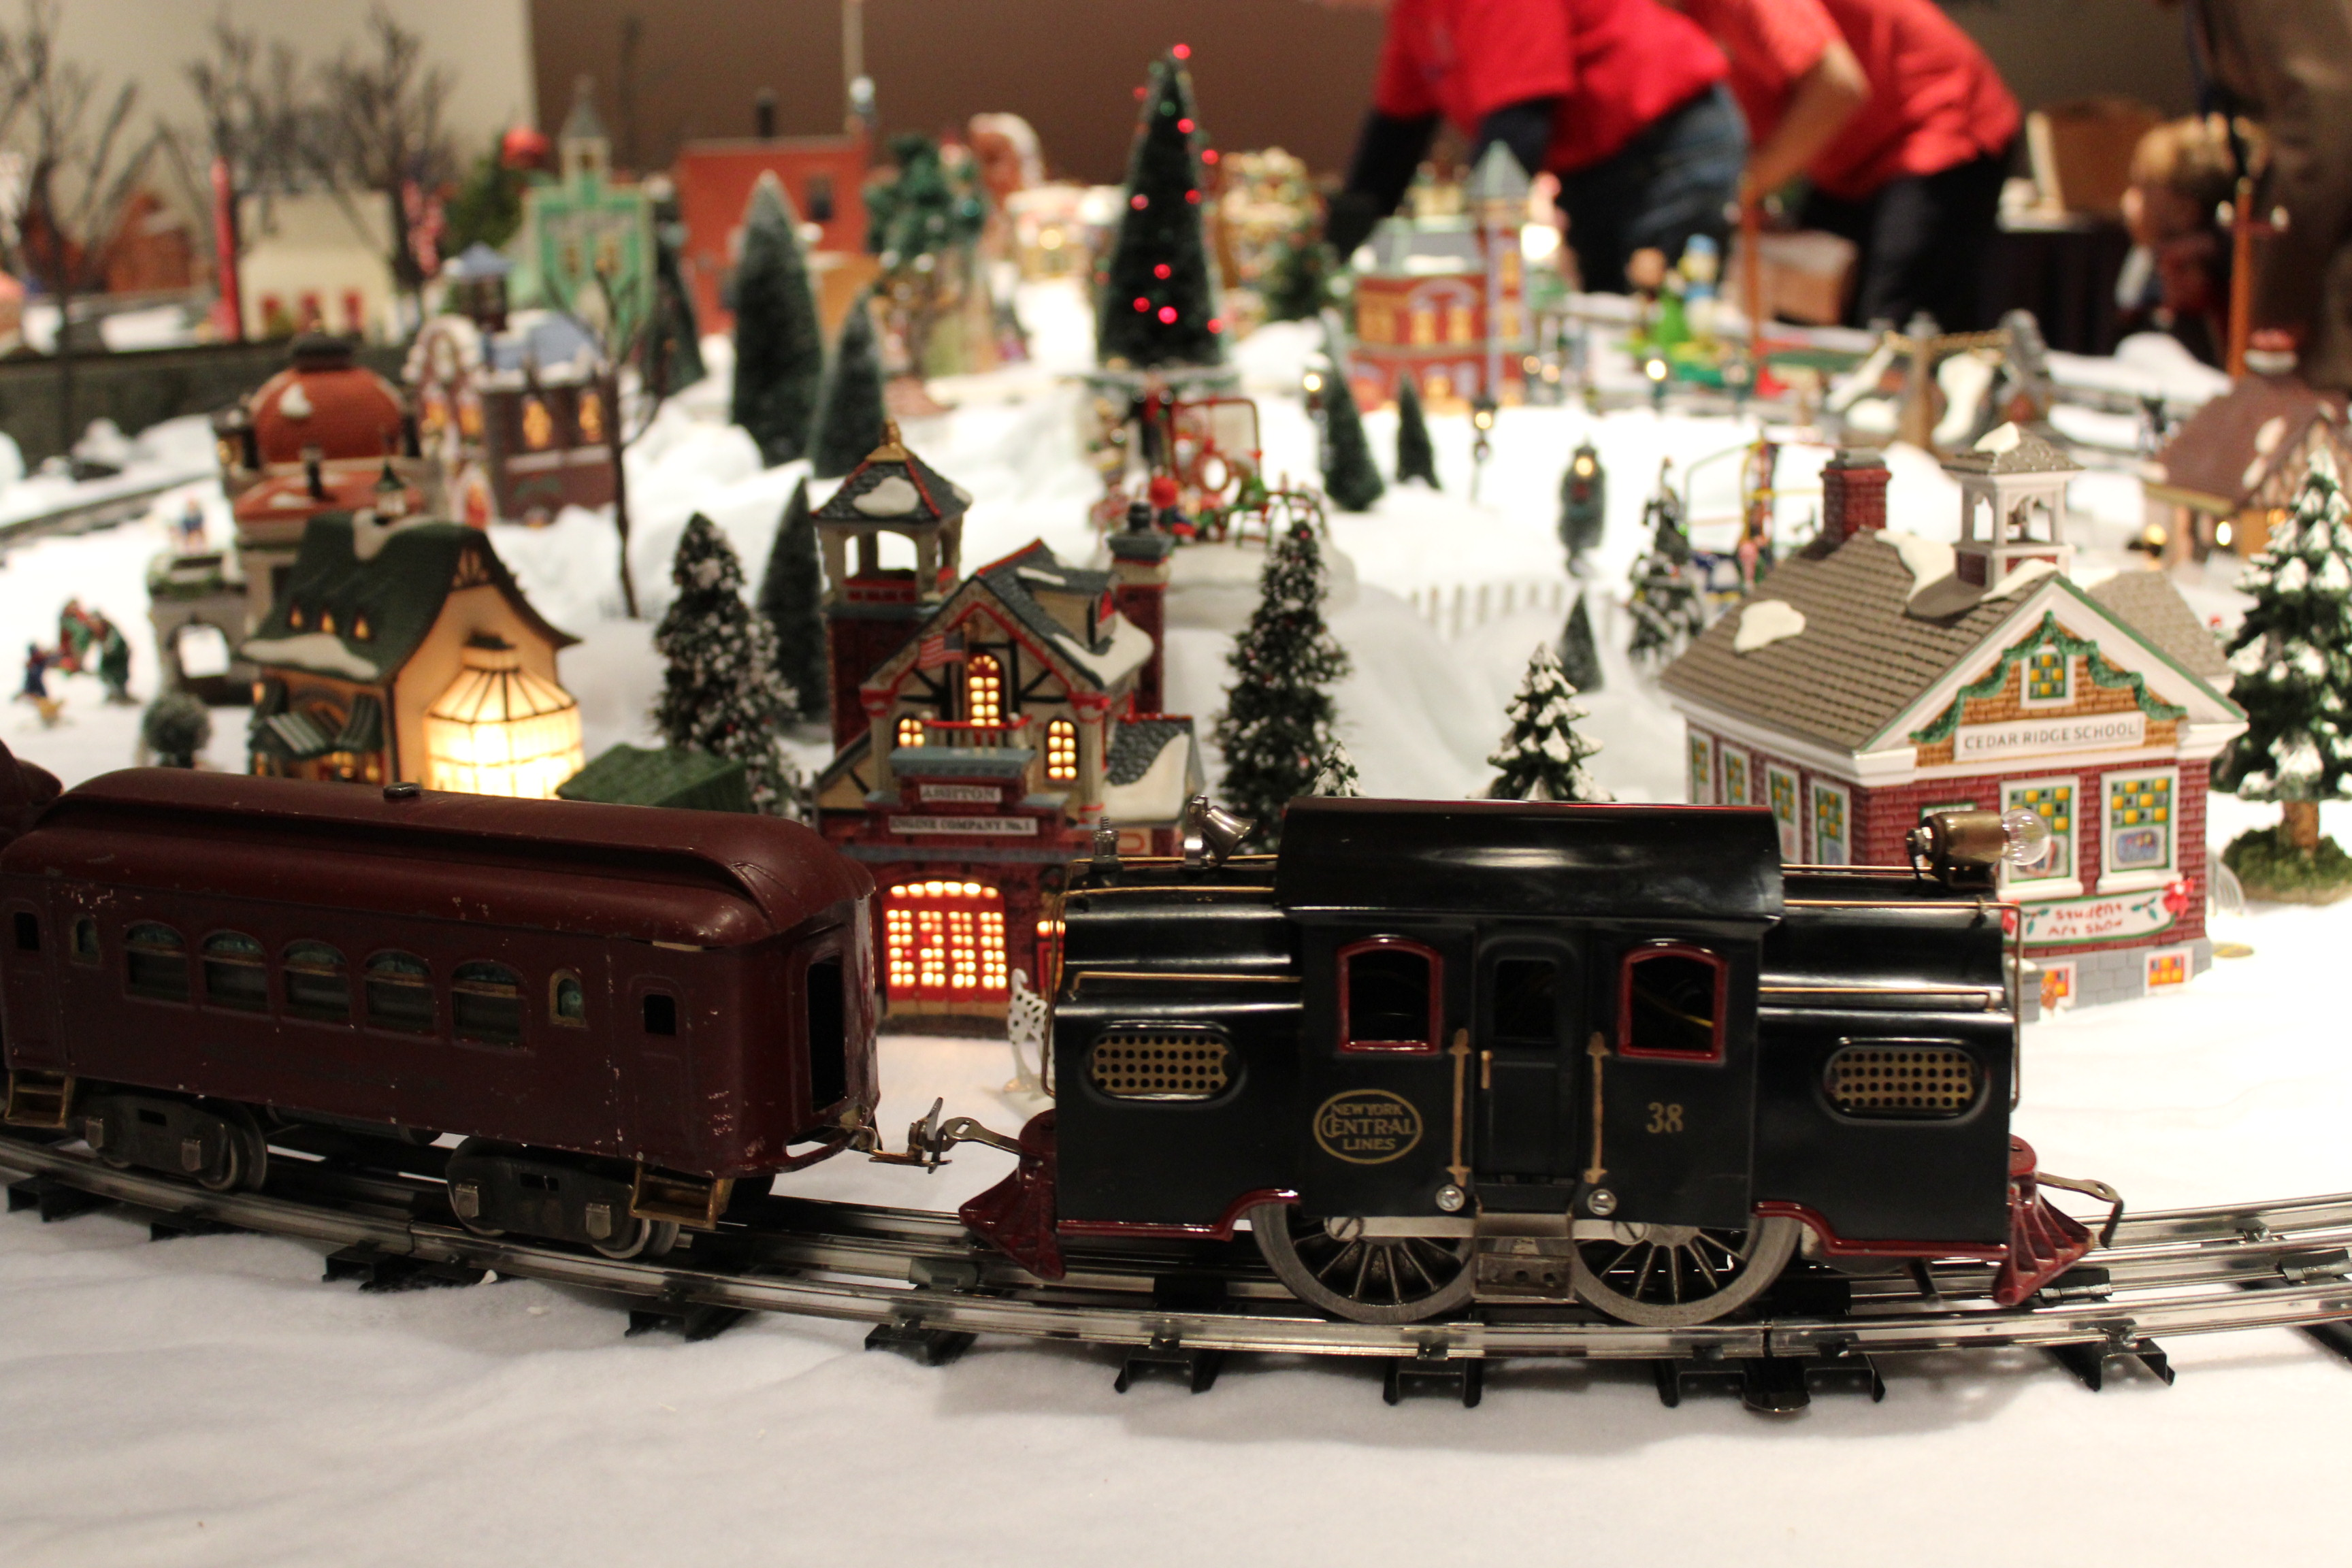 Winter Wonderland Train Show